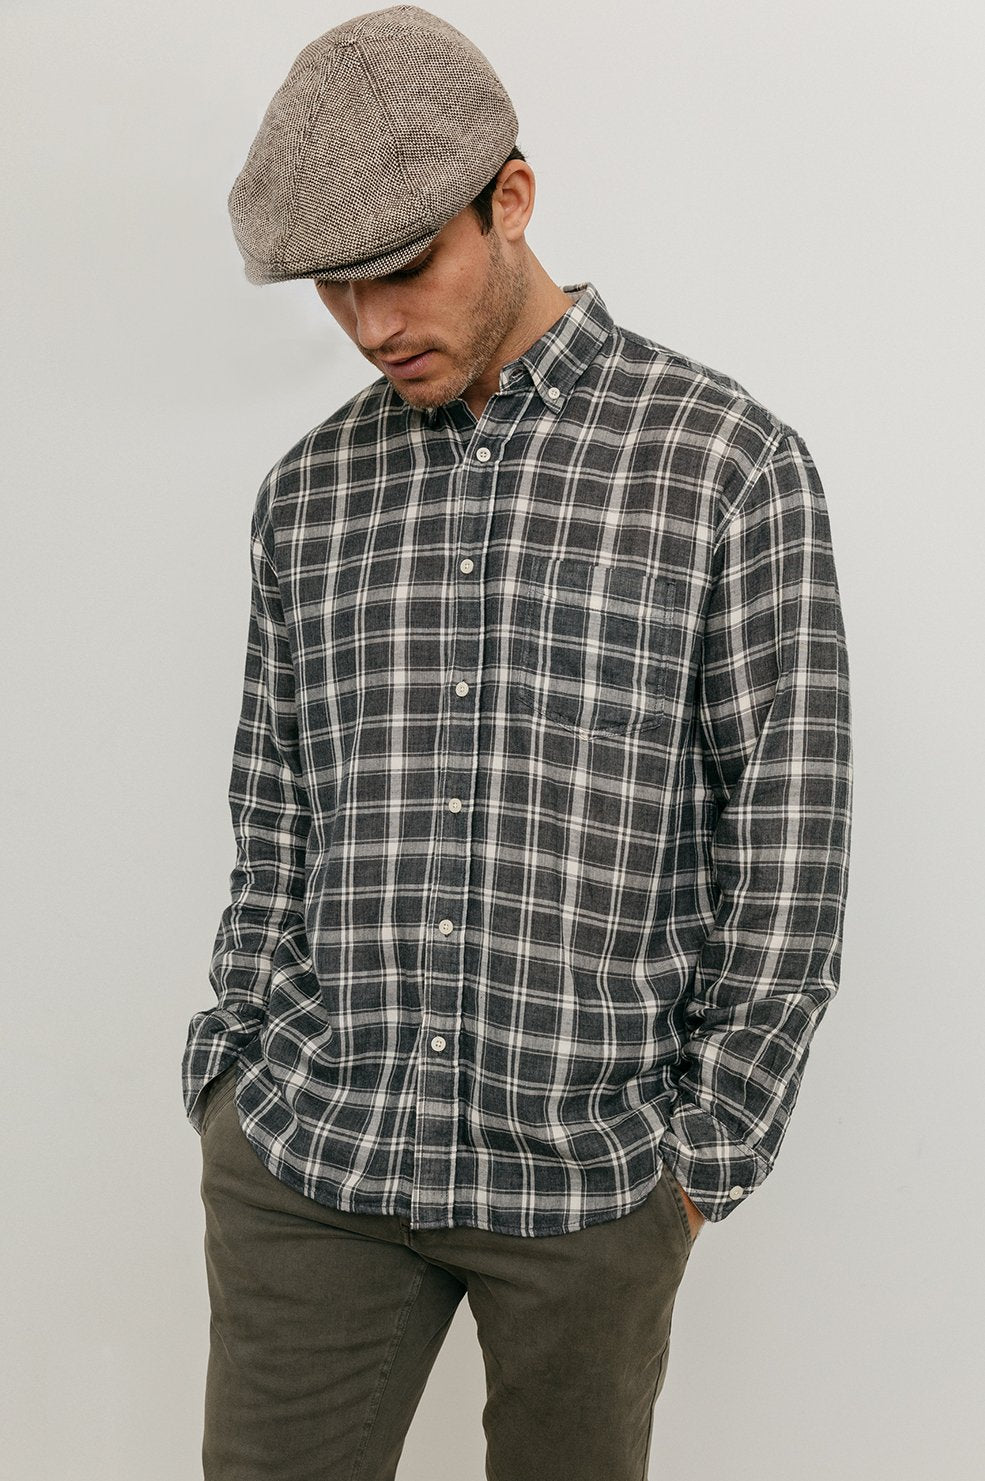 CONNOR SHIRT - CHARCOAL CREAM